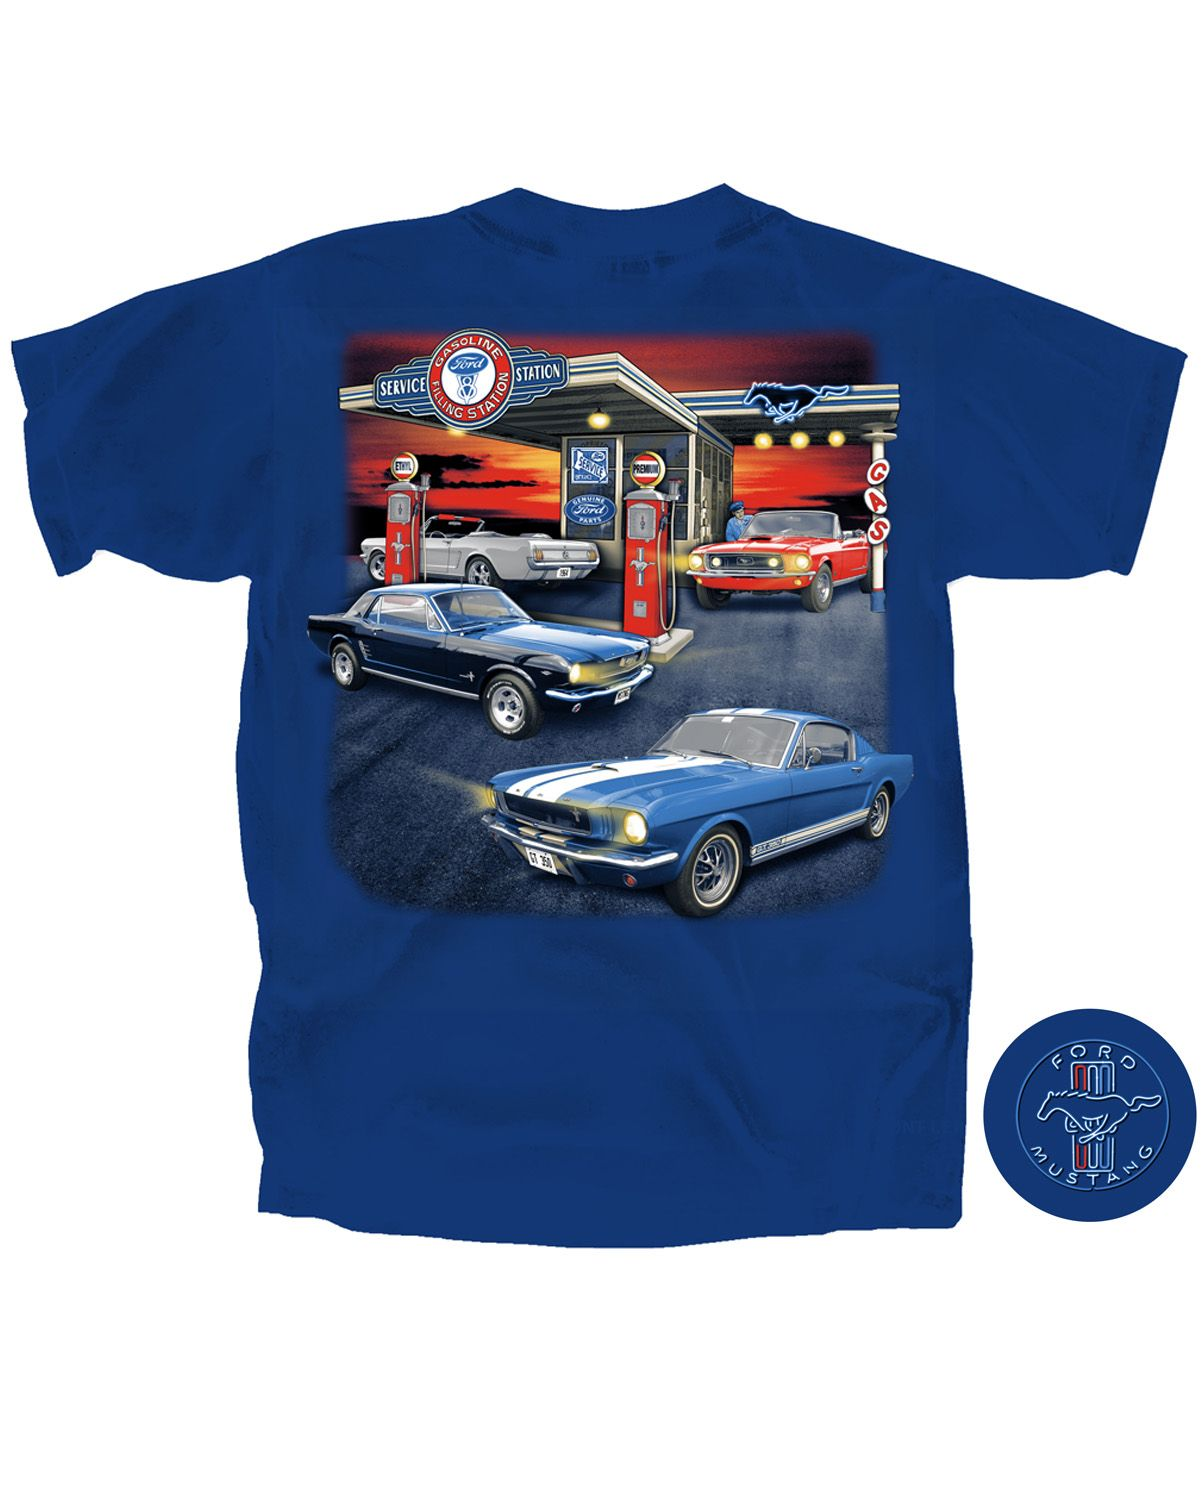 Joe Blow T's, Inc. Joe Blow T's officially licensed Ford